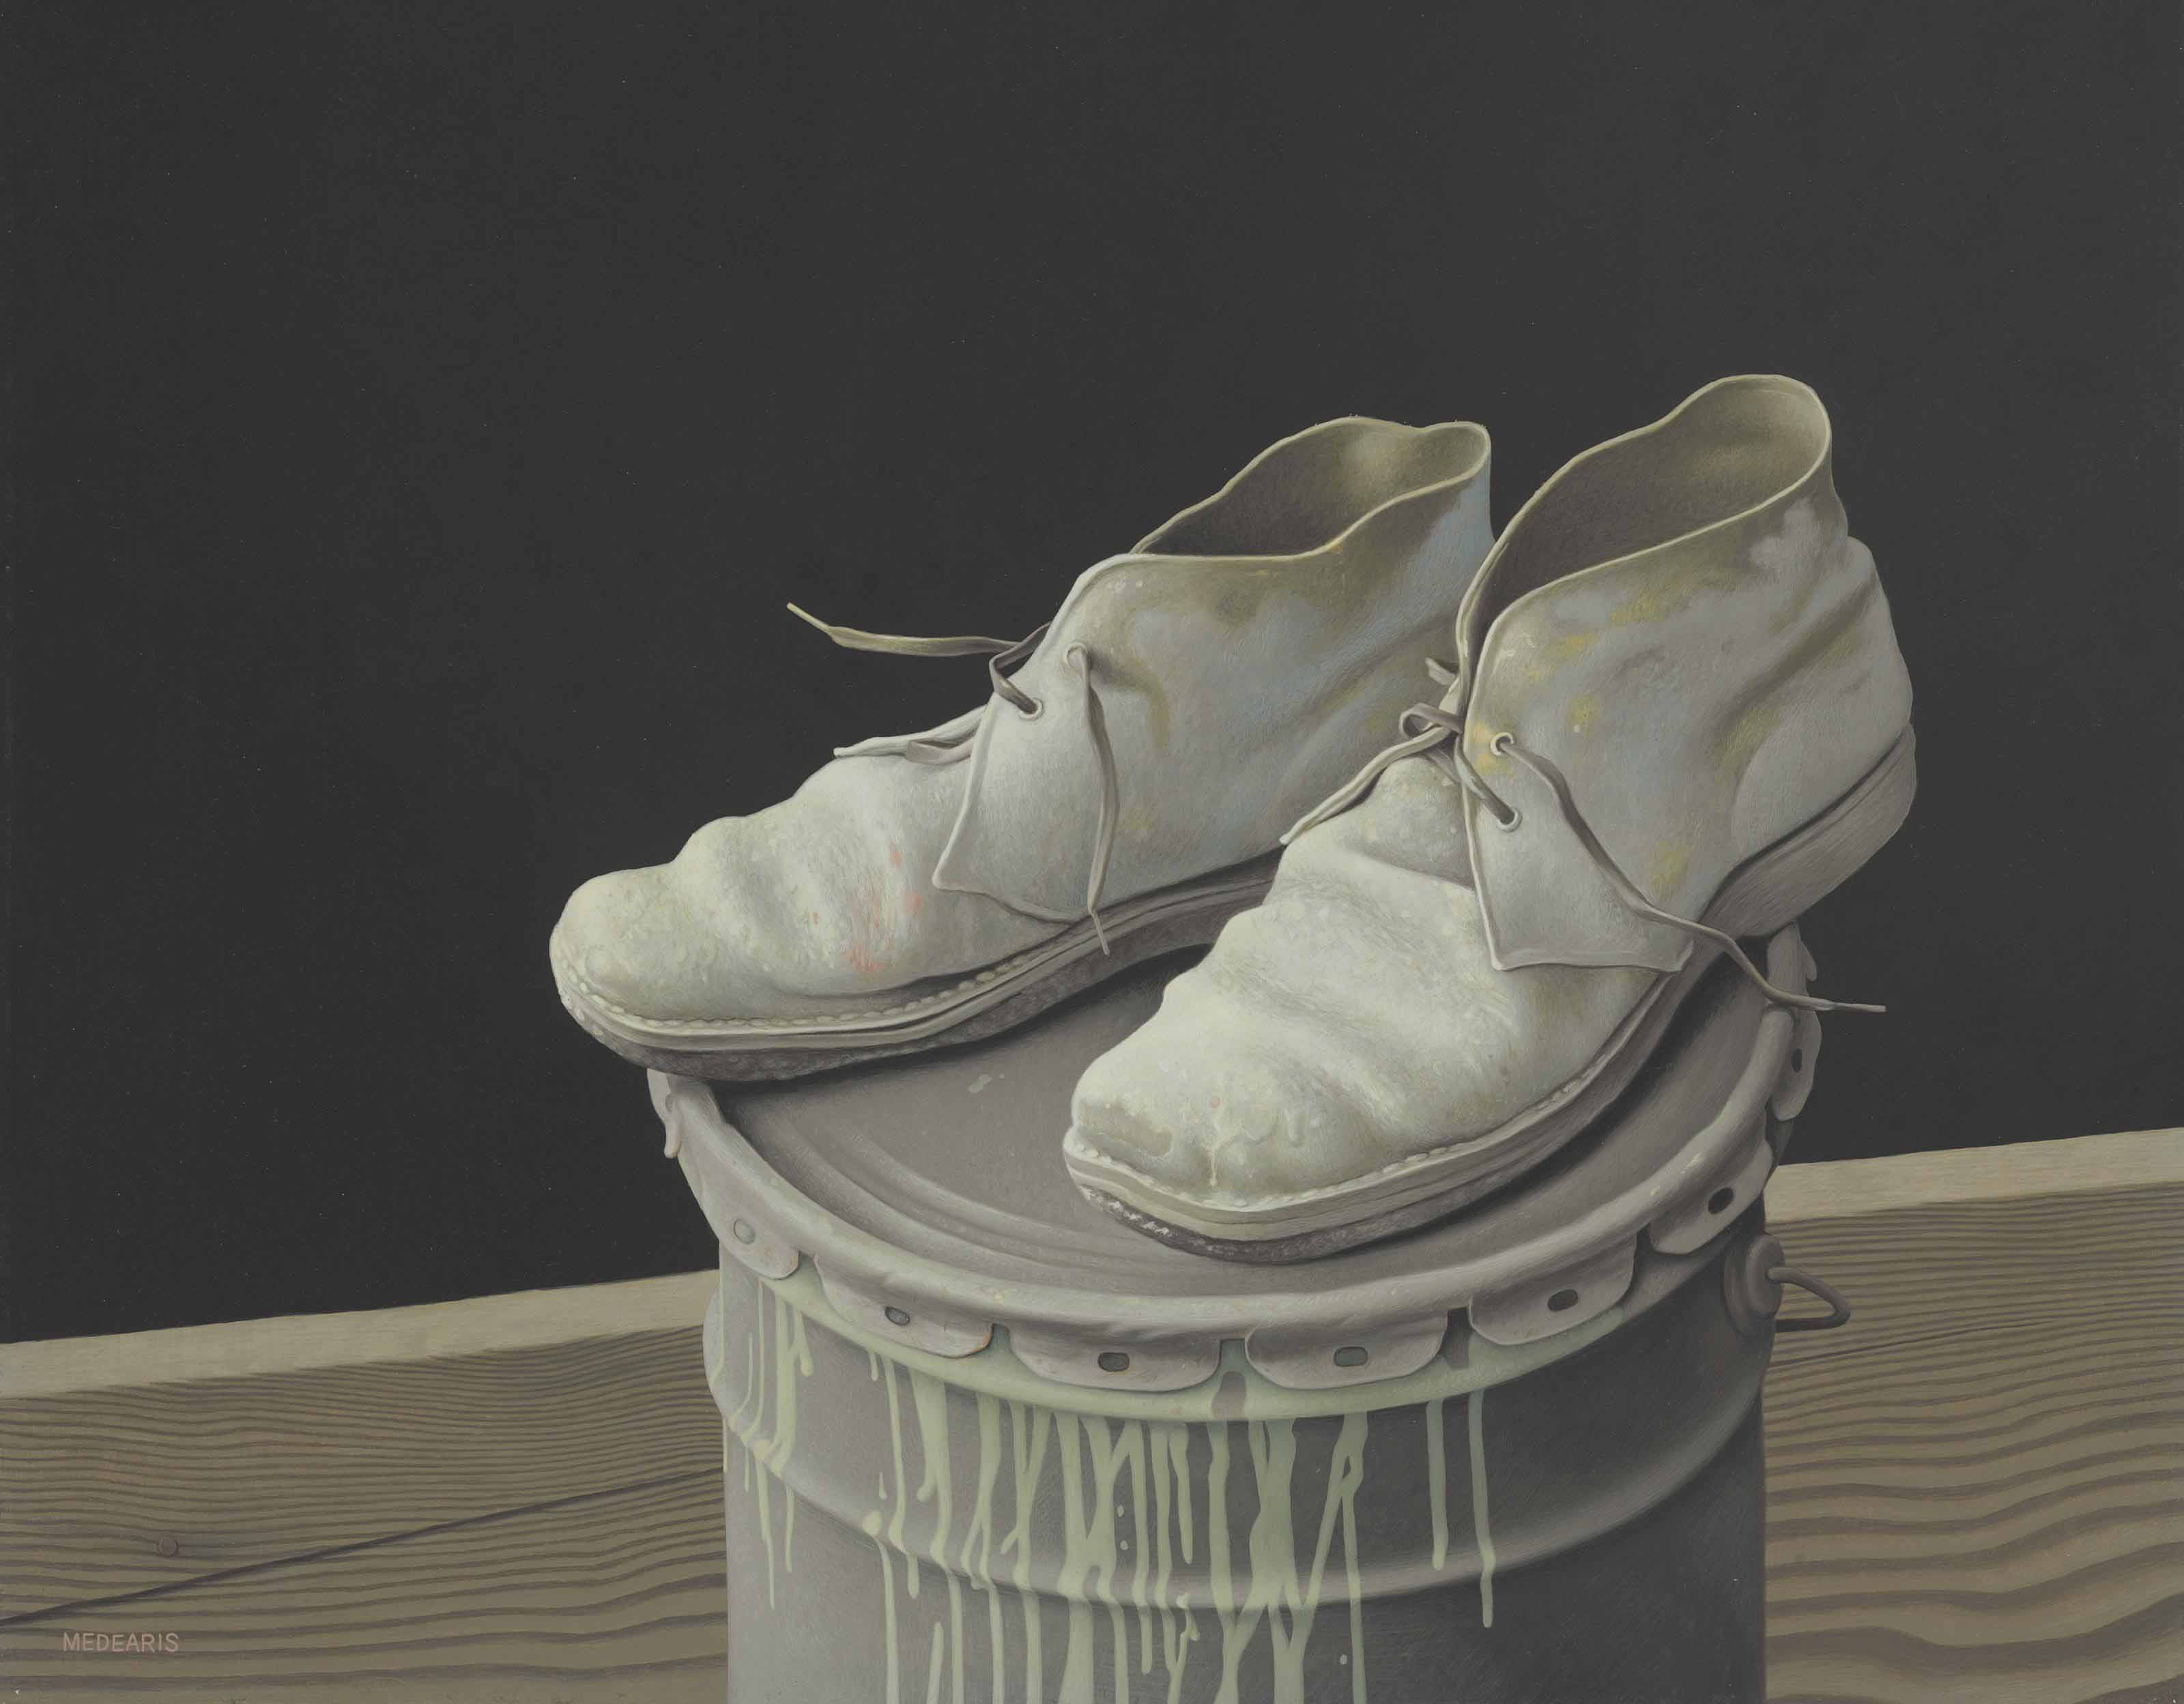 The Painter's Shoes